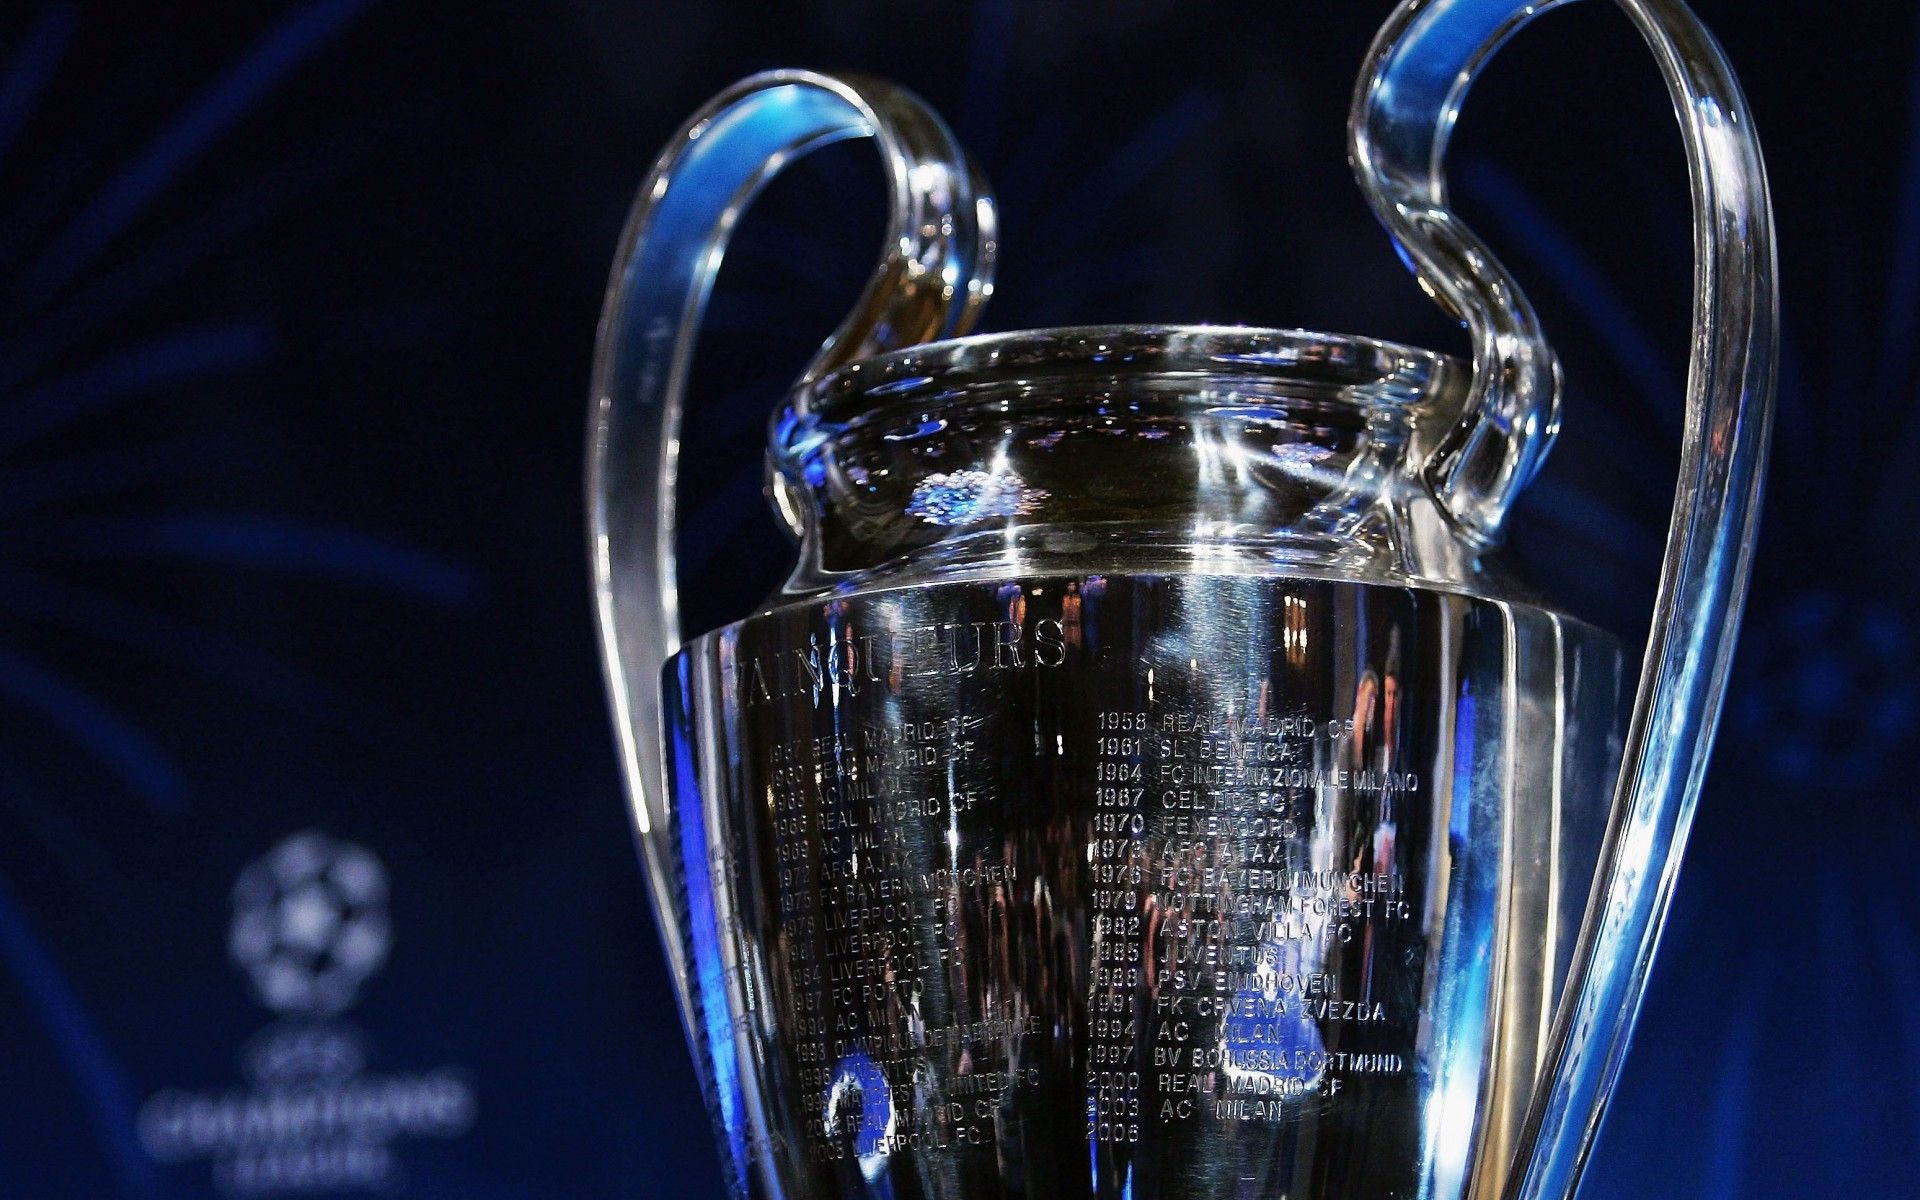 Stunning Champions League Wallpapers The Football Column 1920x1200